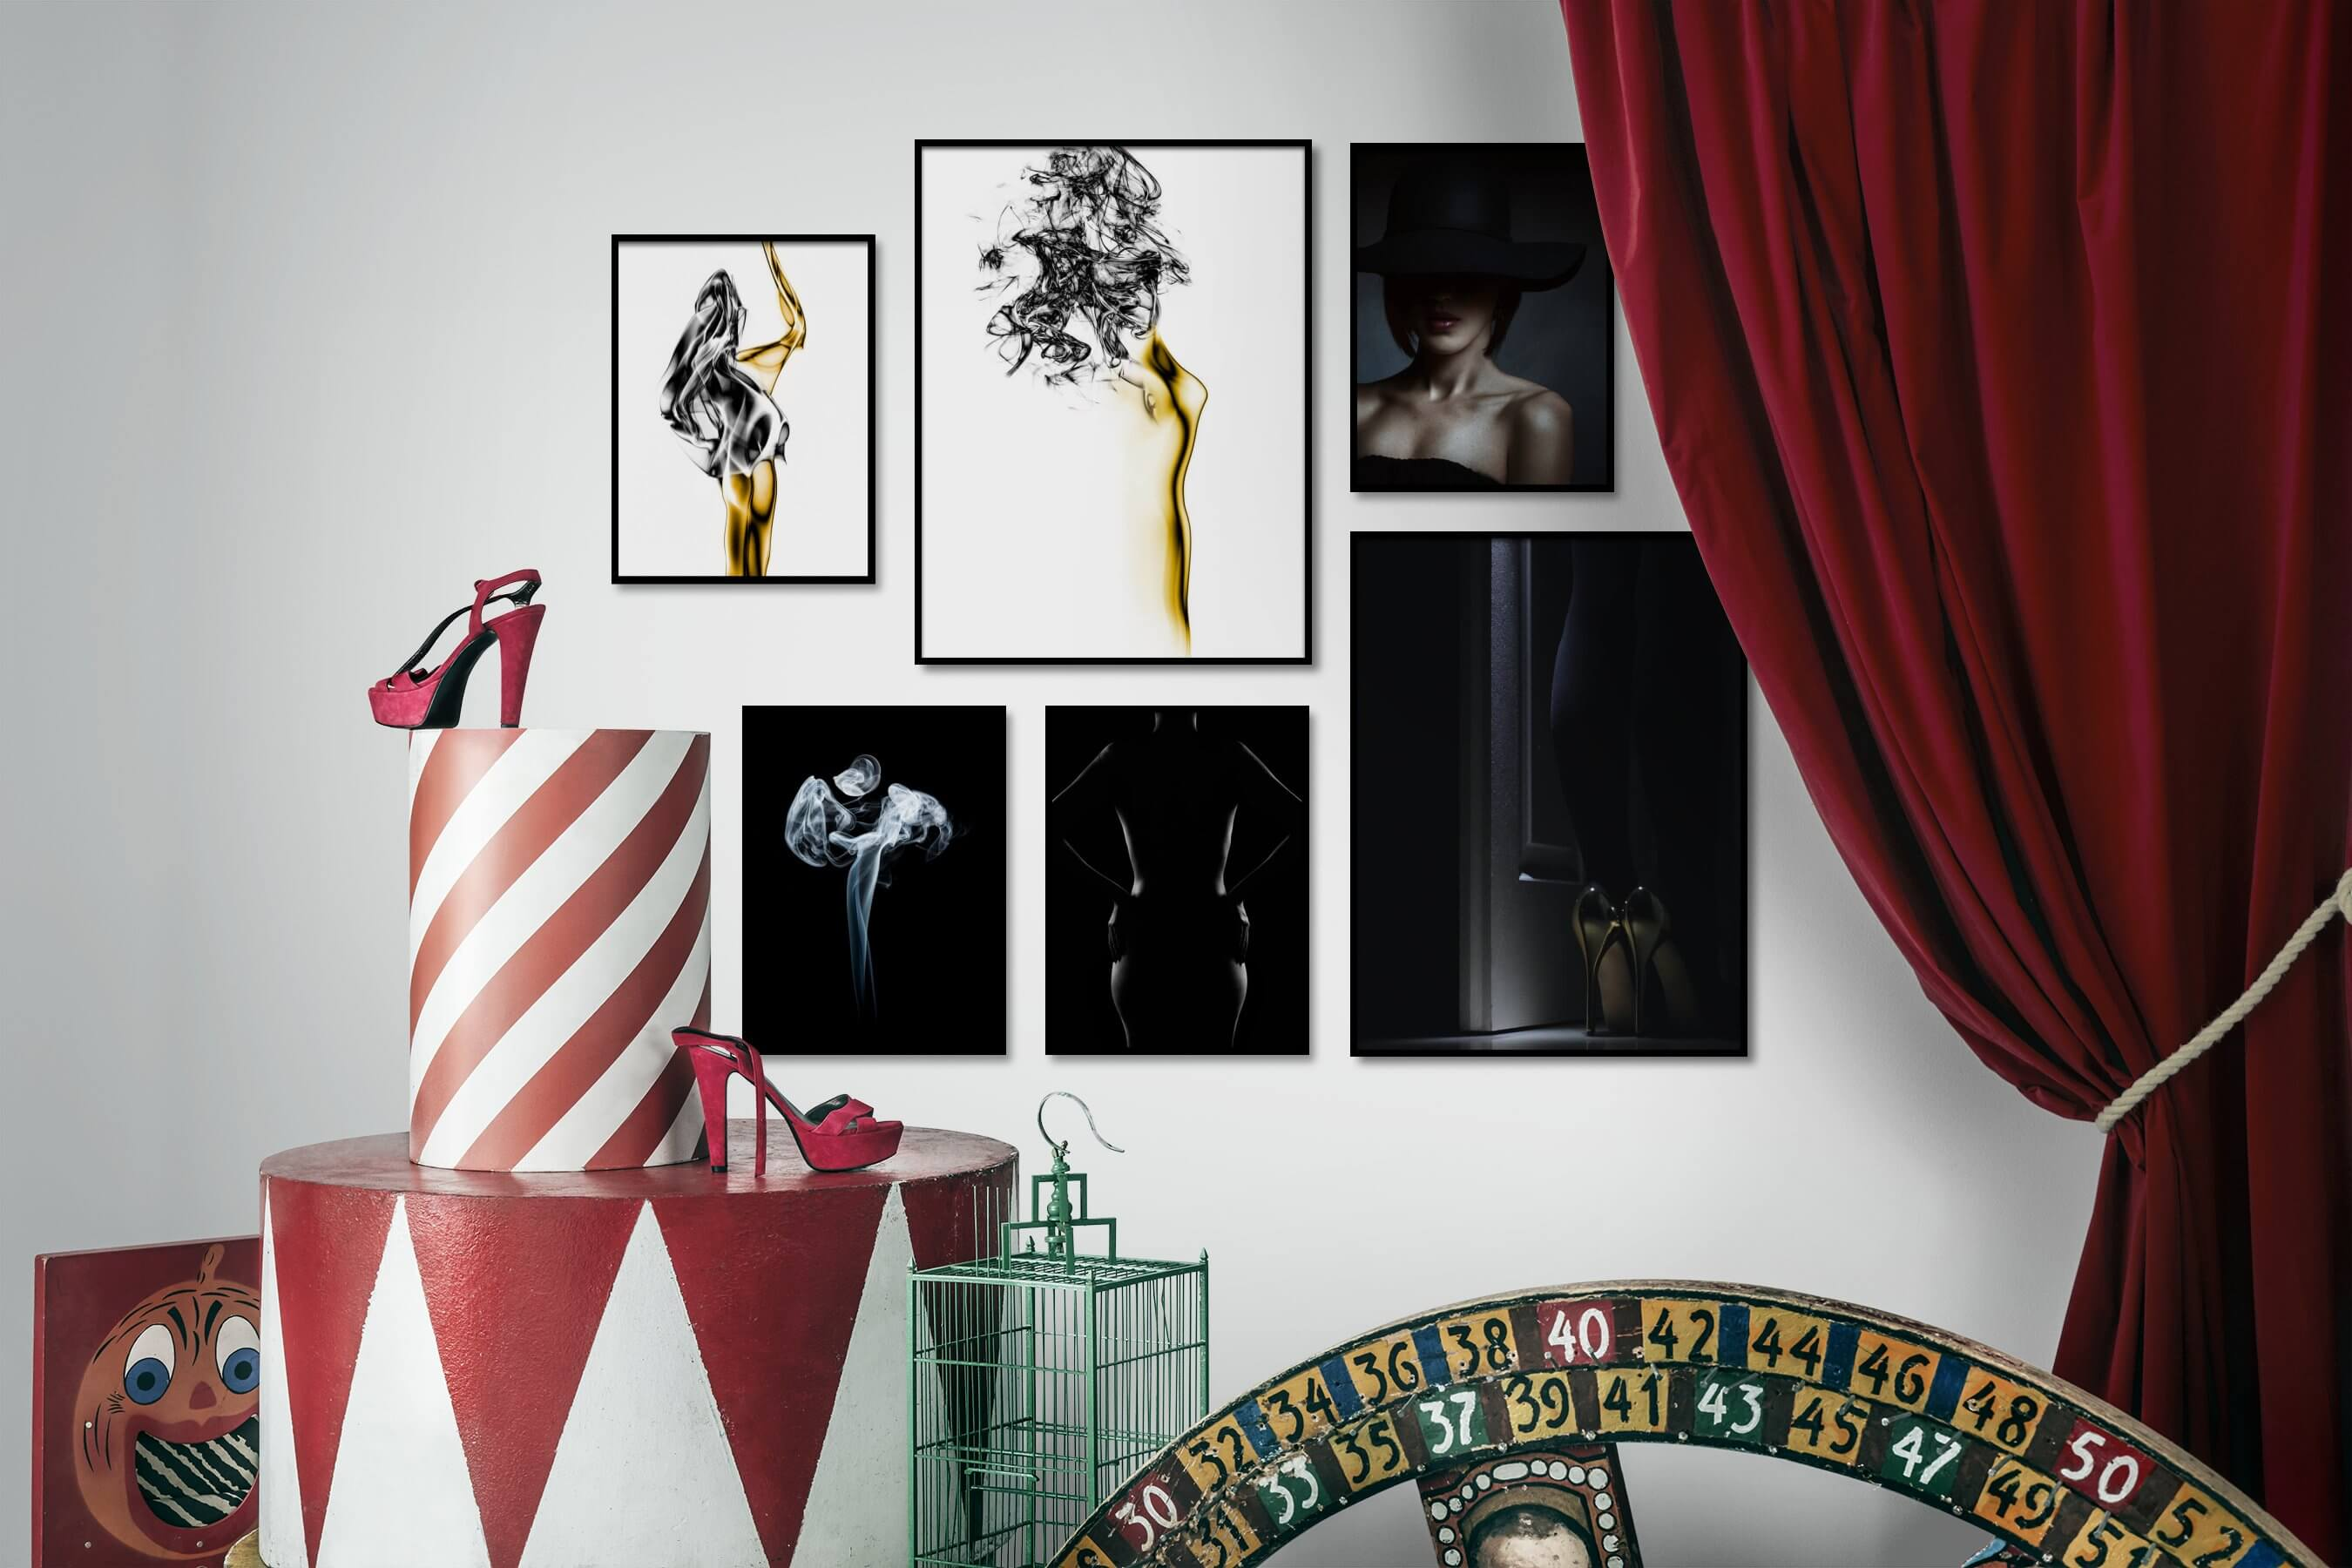 Gallery wall idea with six framed pictures arranged on a wall depicting Fashion & Beauty, Bright Tones, For the Minimalist, Dark Tones, Black & White, and For the Moderate